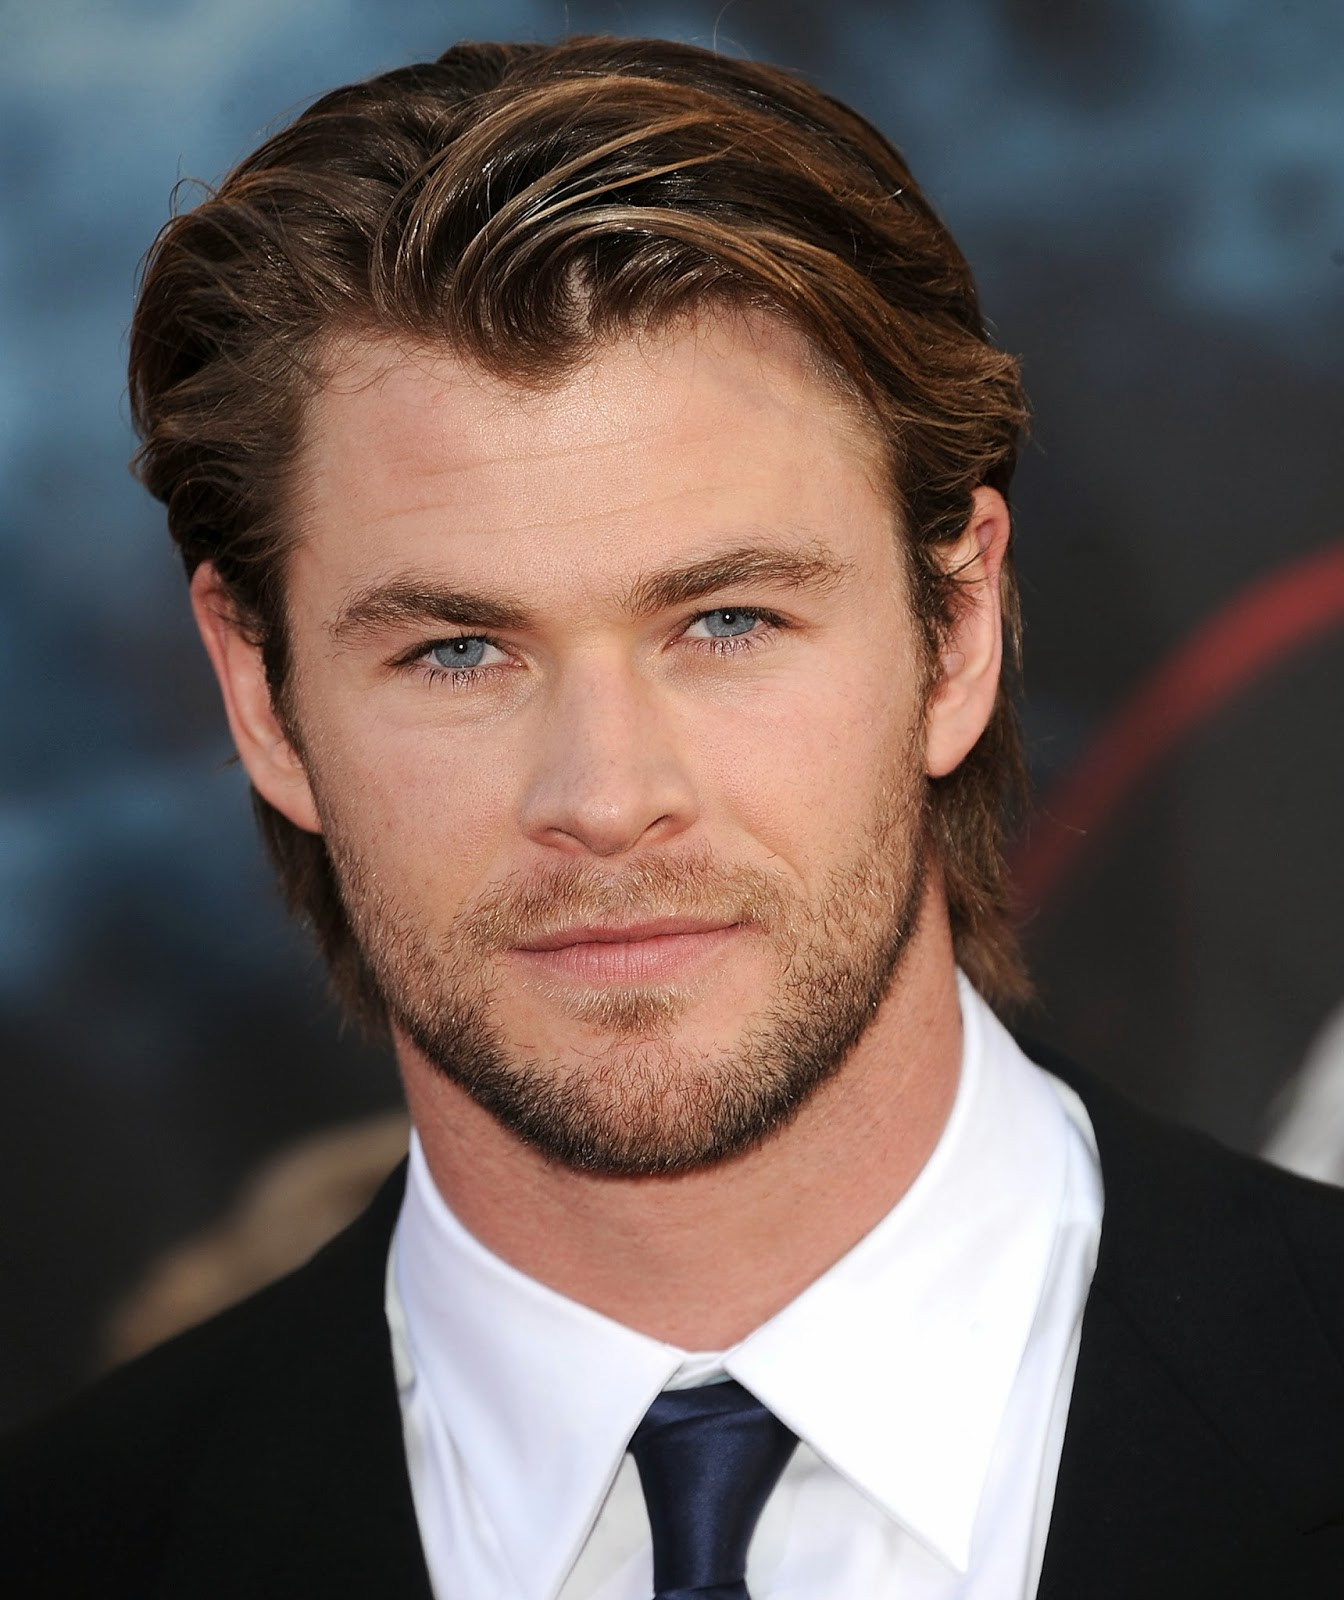 Male Amp Female Clebrities Chris Hemsworth Hot Photo Shoot